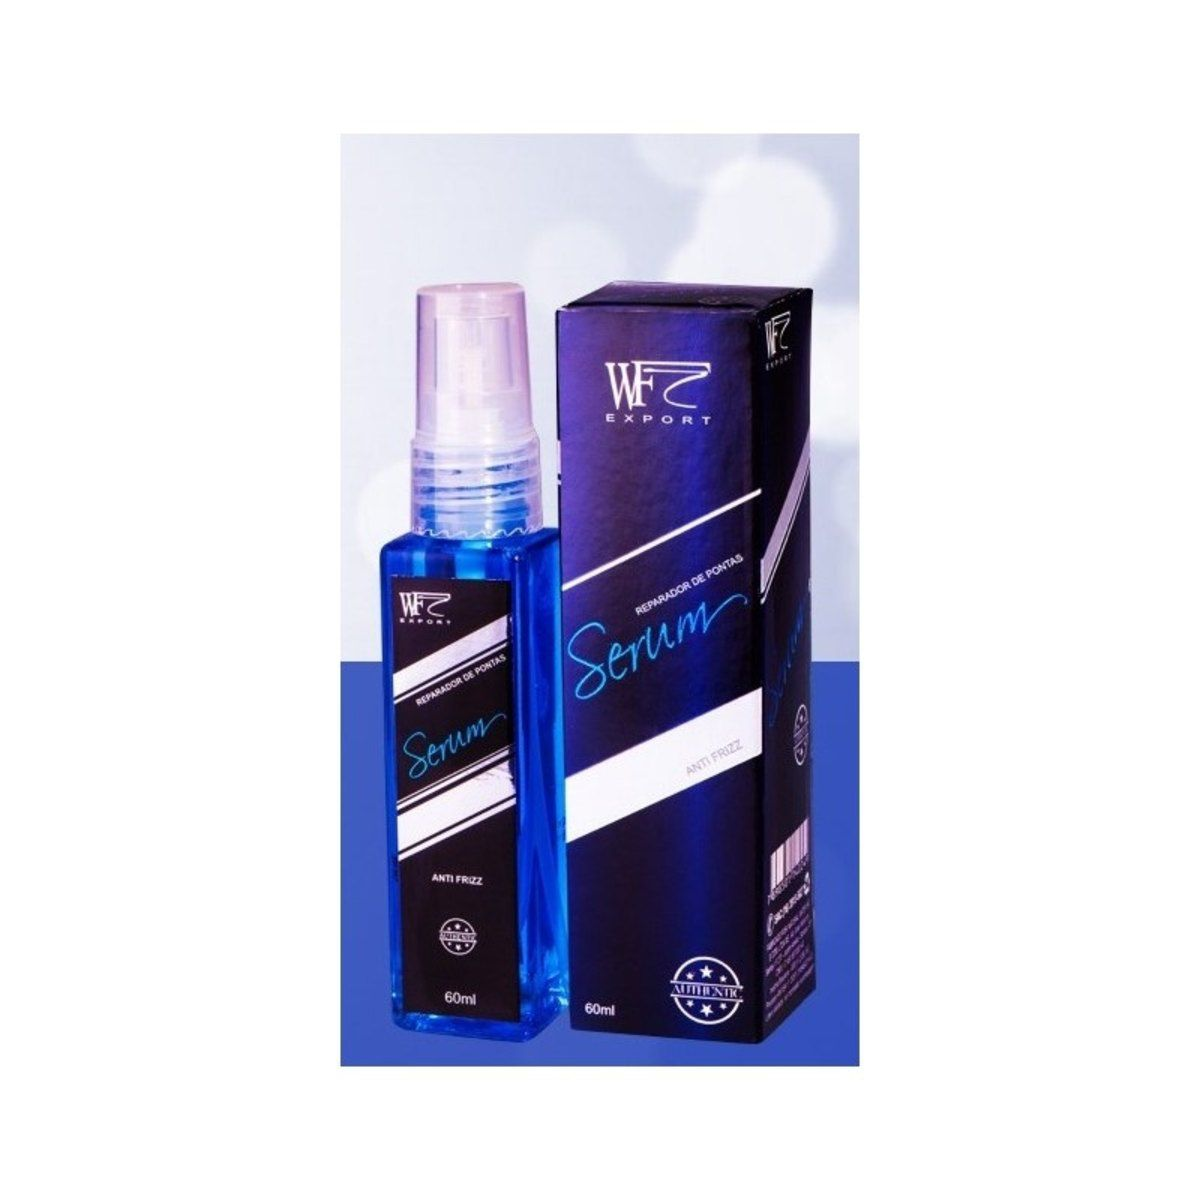 FINISH - REPARADOR DE PONTAS SERUM WF COSMETICOS 60ML